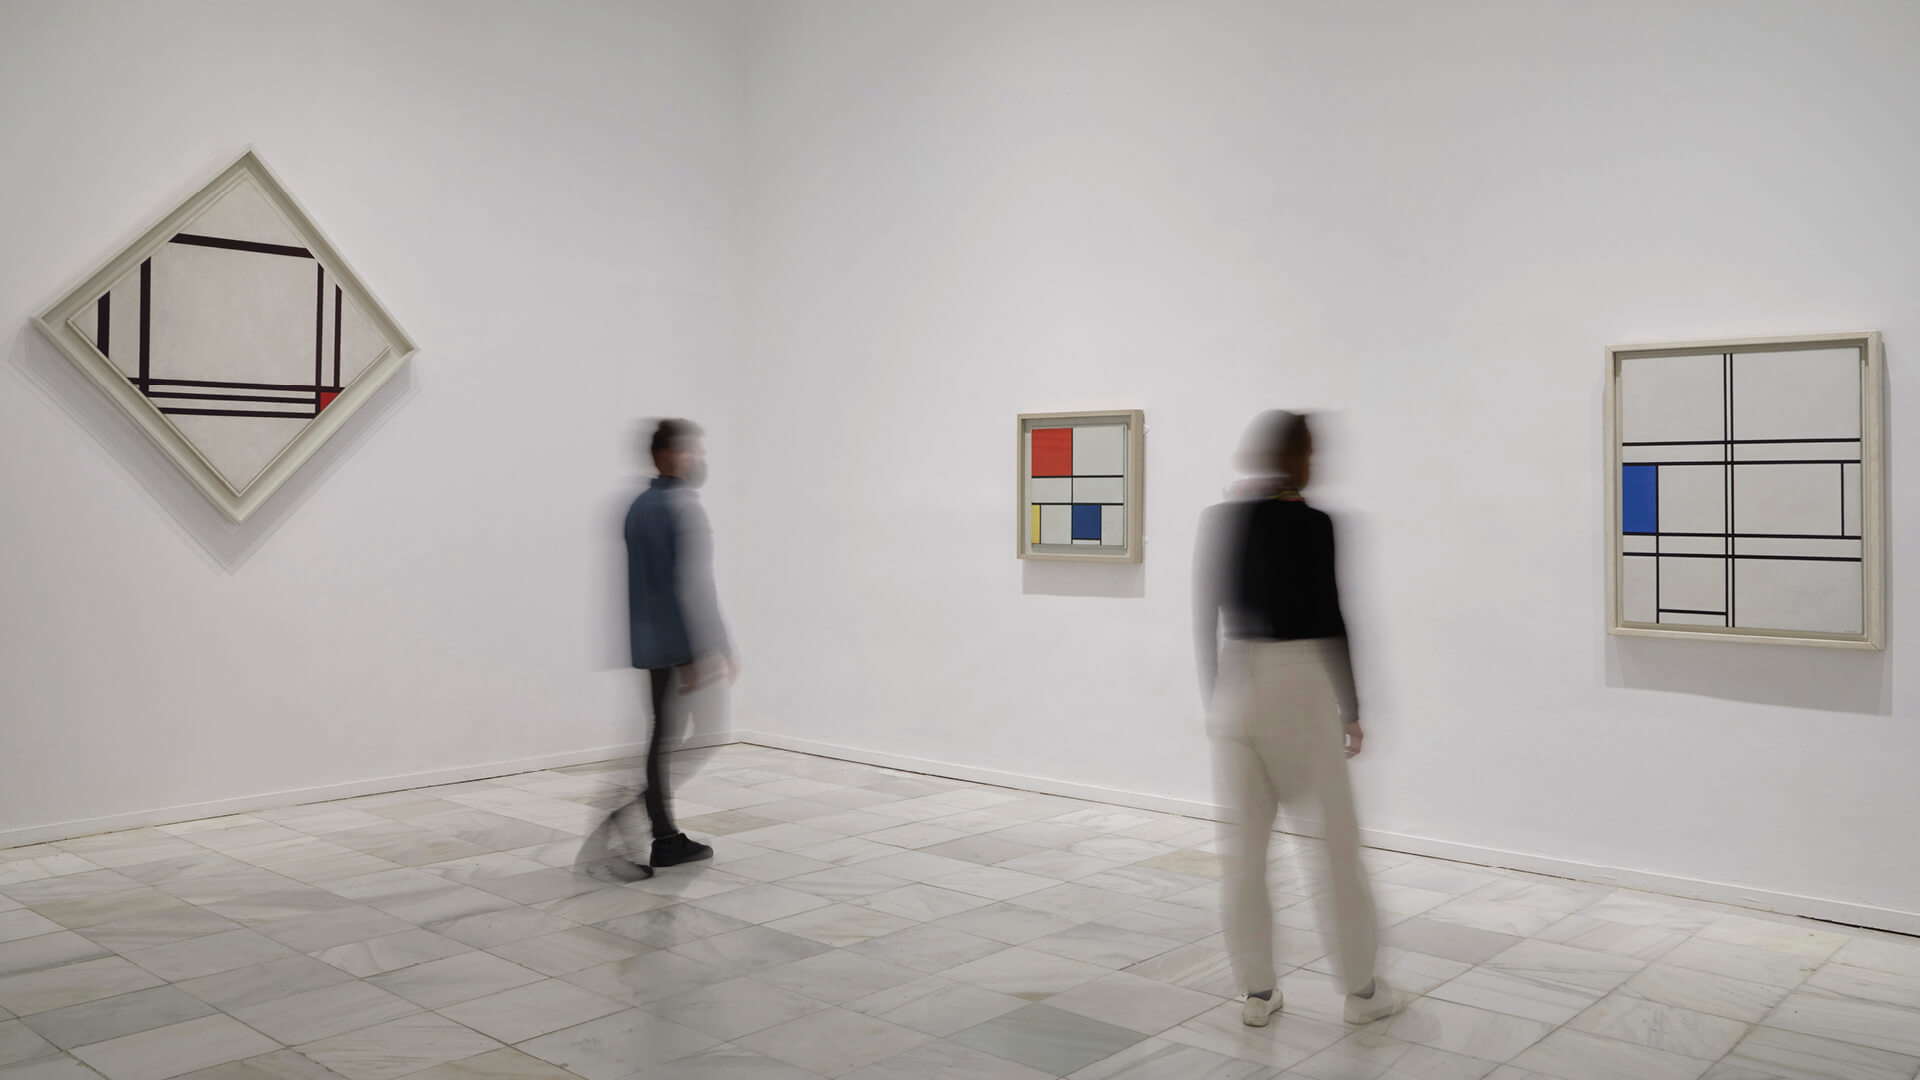 Mondrian and De Stijl, Museo Reina Sofia. L to R: Lozenge Composition with Eight Lines and Red (Pic No. 3), Composition C (No. 3) with Red, Yellow and Blue and Composition in Blue and White| STIRworld